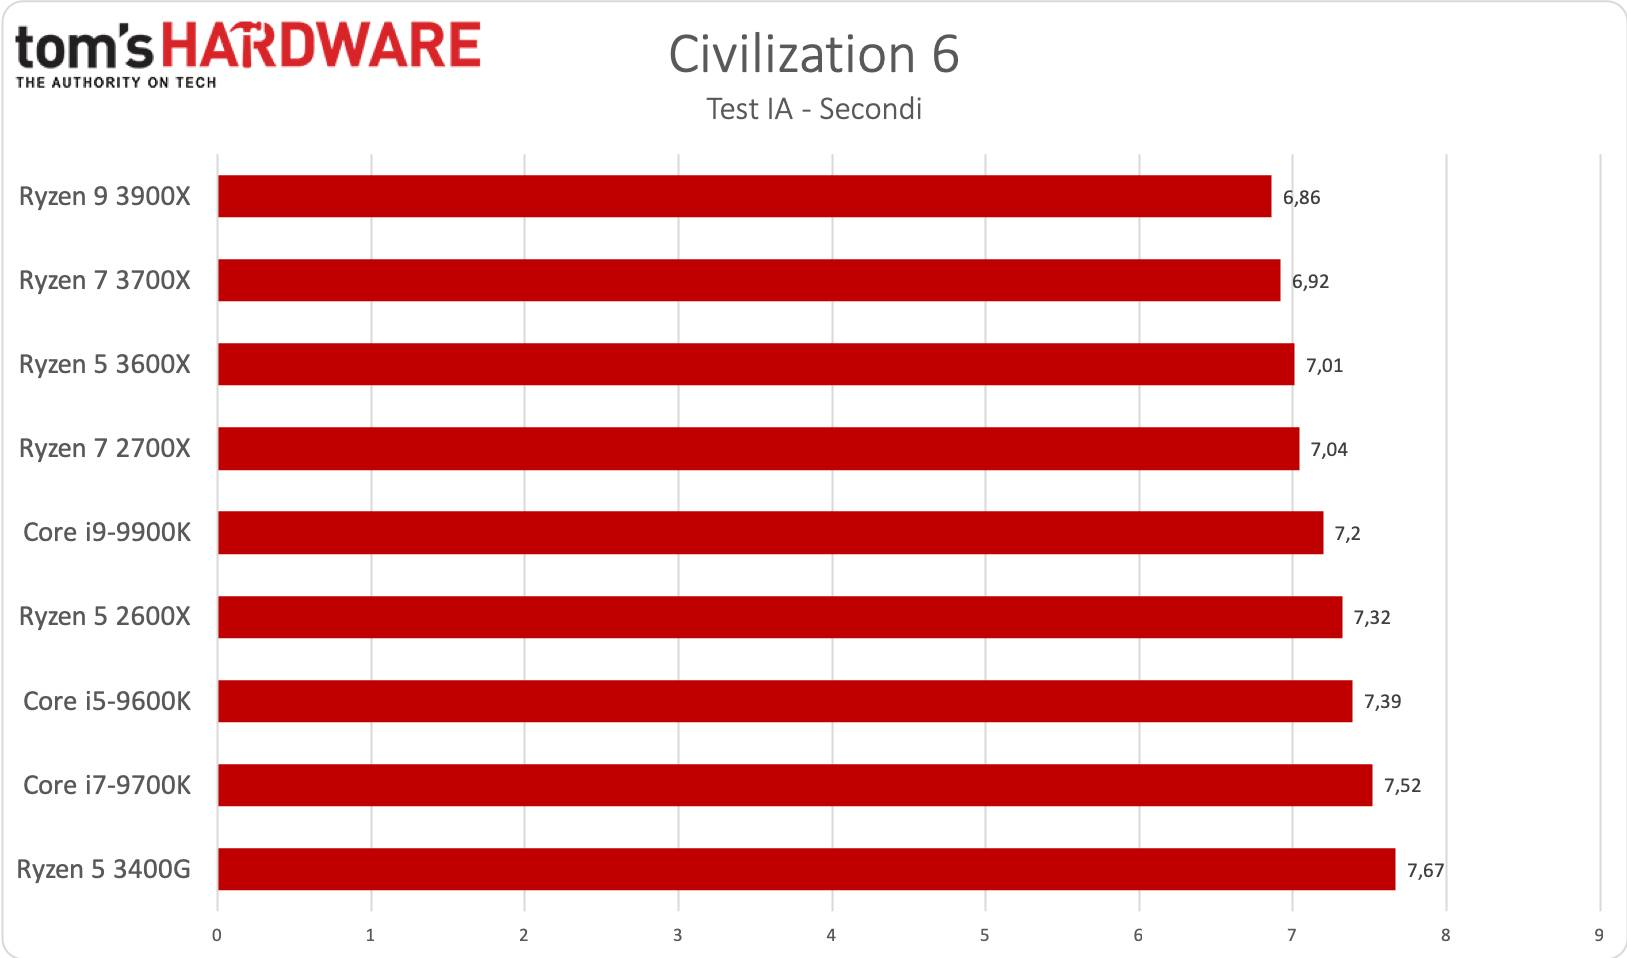 Ryzen 5 - Civilization 6